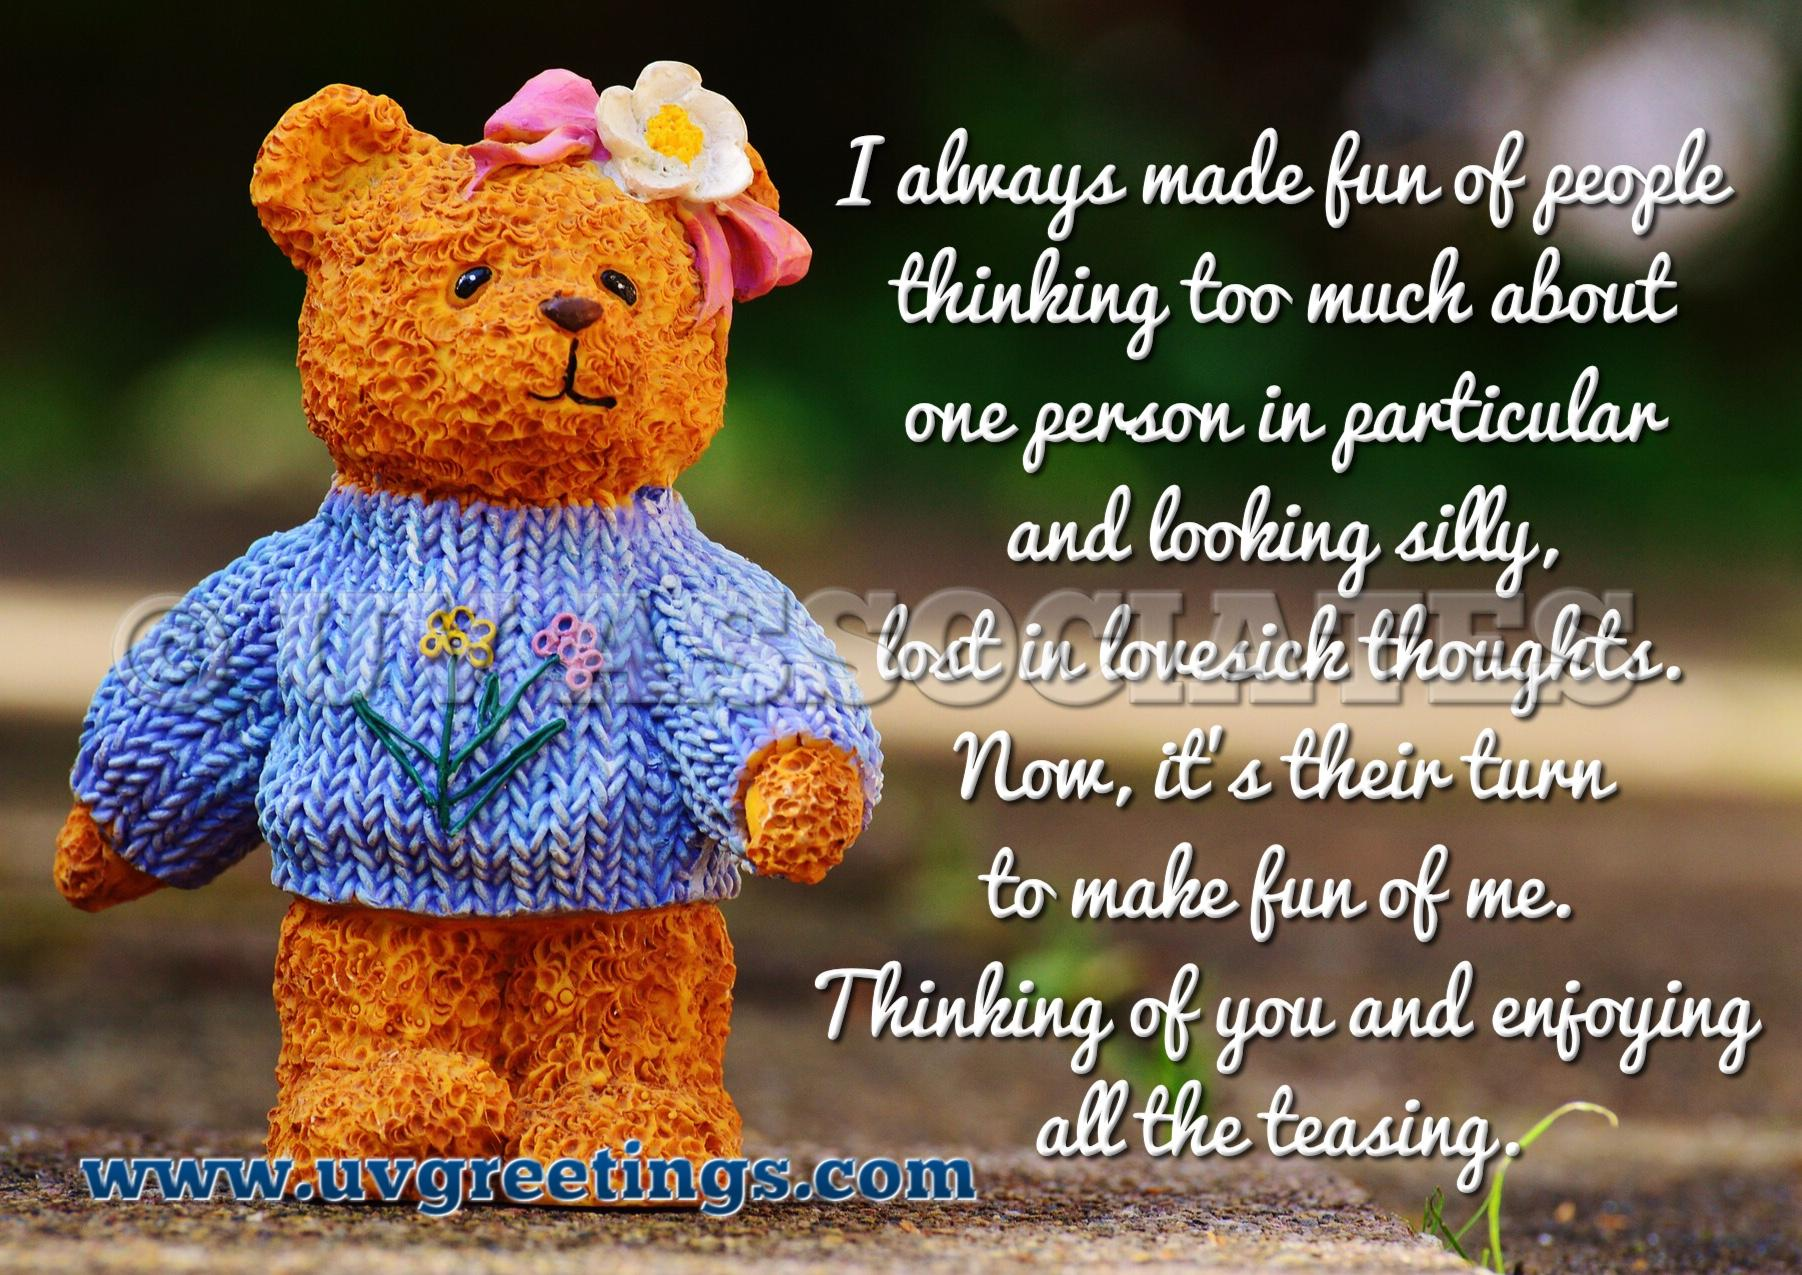 29 Thinking of you Messages - Romantic Poems, Inspiring ...